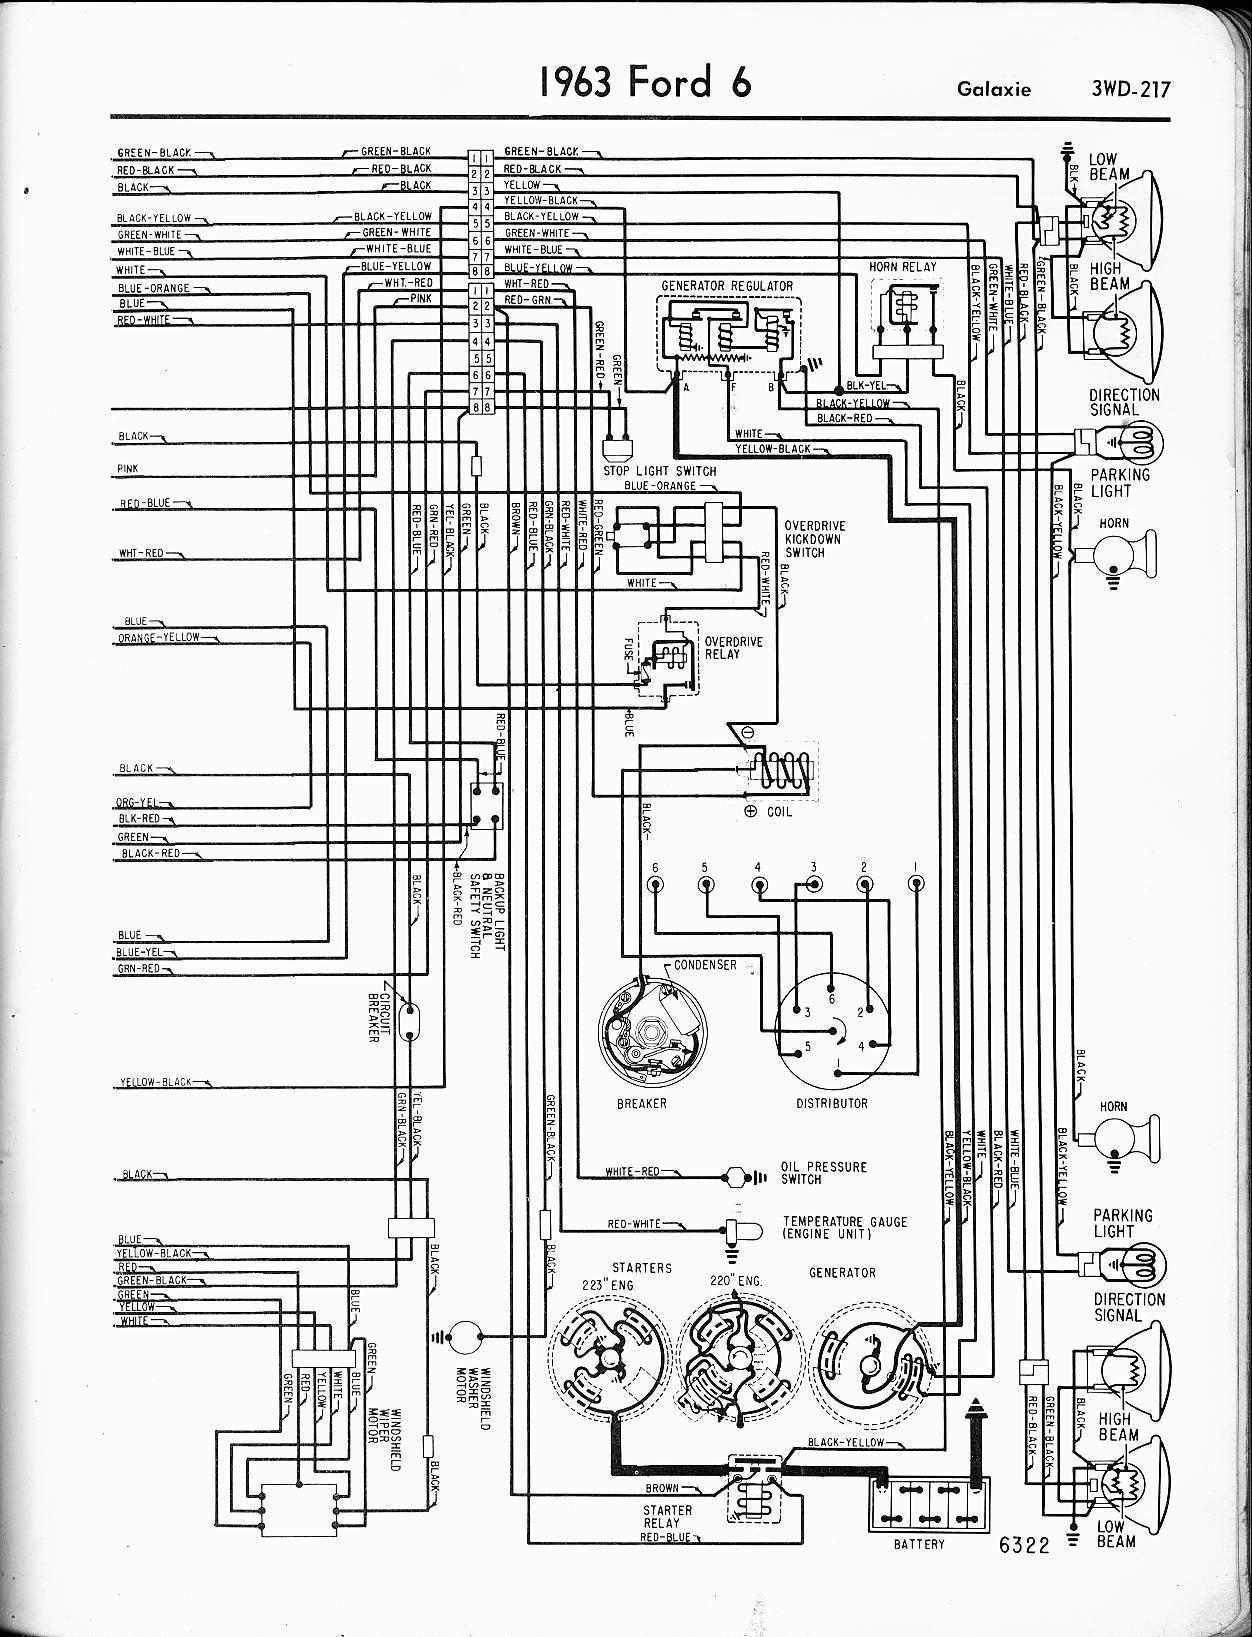 [QMVU_8575]  66 F100 Wiring Diagram Band Wiring Harness For 79 -  haji-bolot.the-damboel-27.florimunt.fr | 1966 Ford F100 Blinker Switch Wiring |  | Wiring Diagram and Schematics